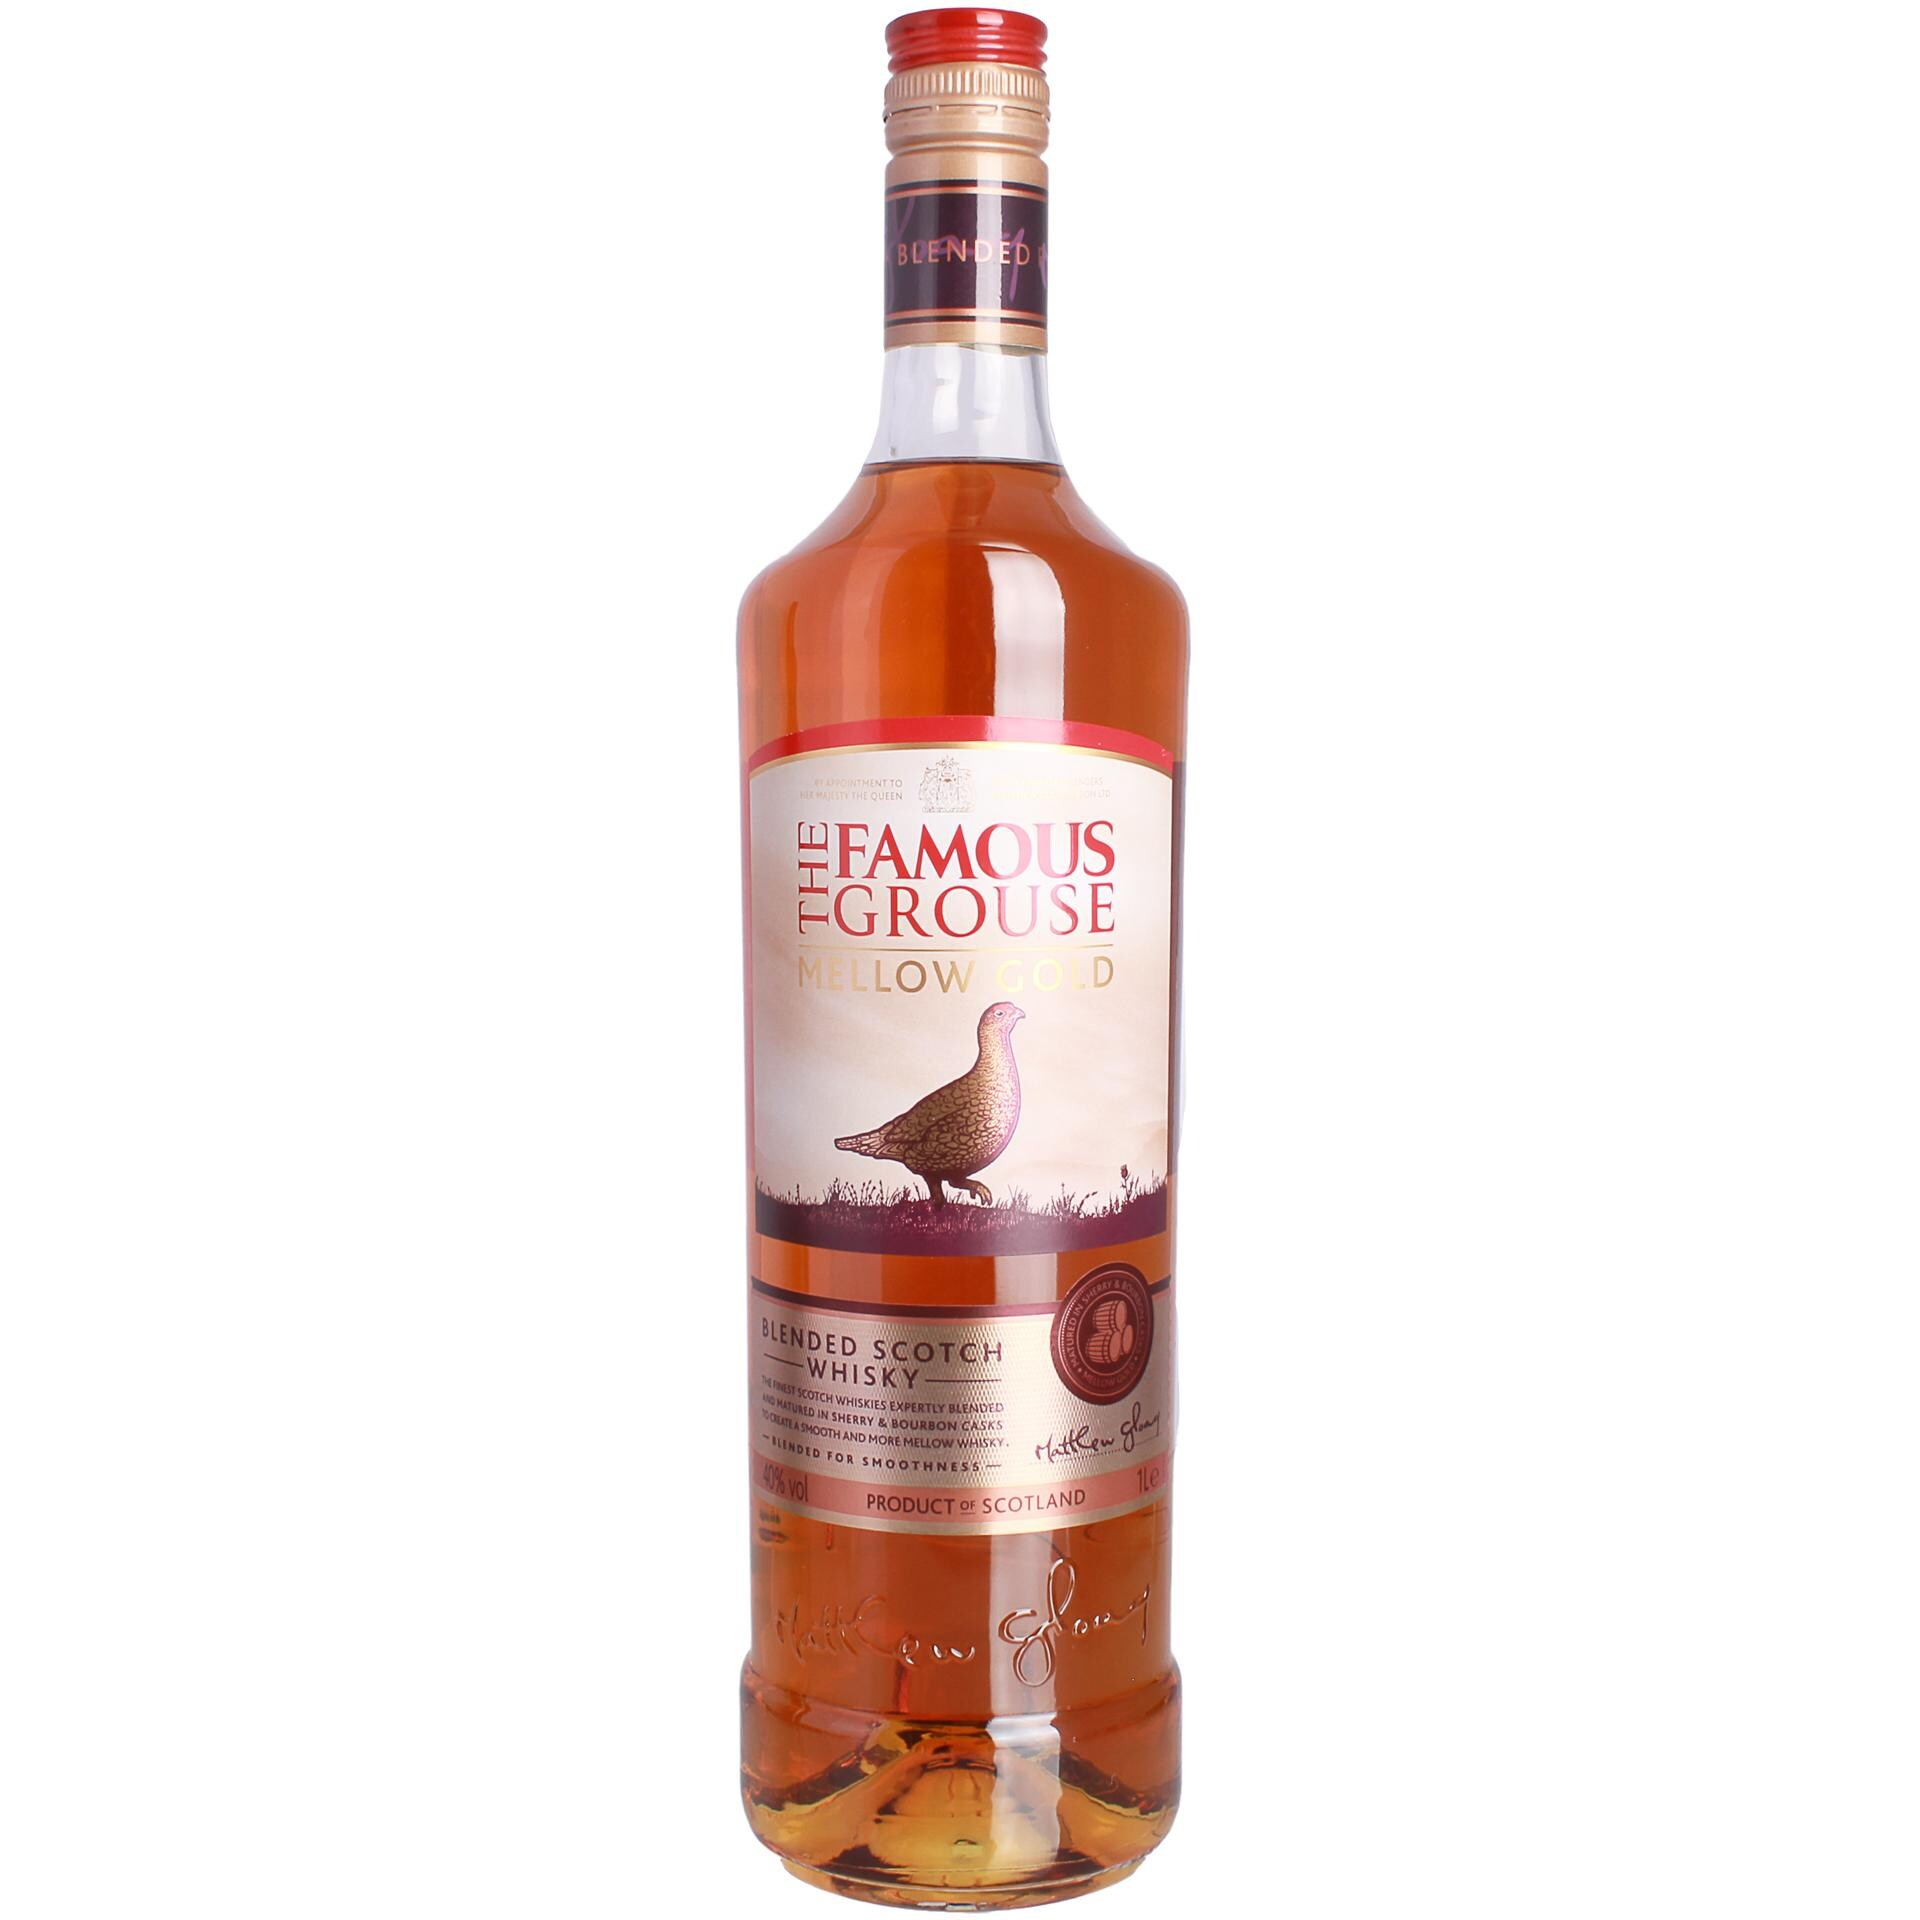 Famous Grouse Mellow Gold Blended Scotch Whisky 1l